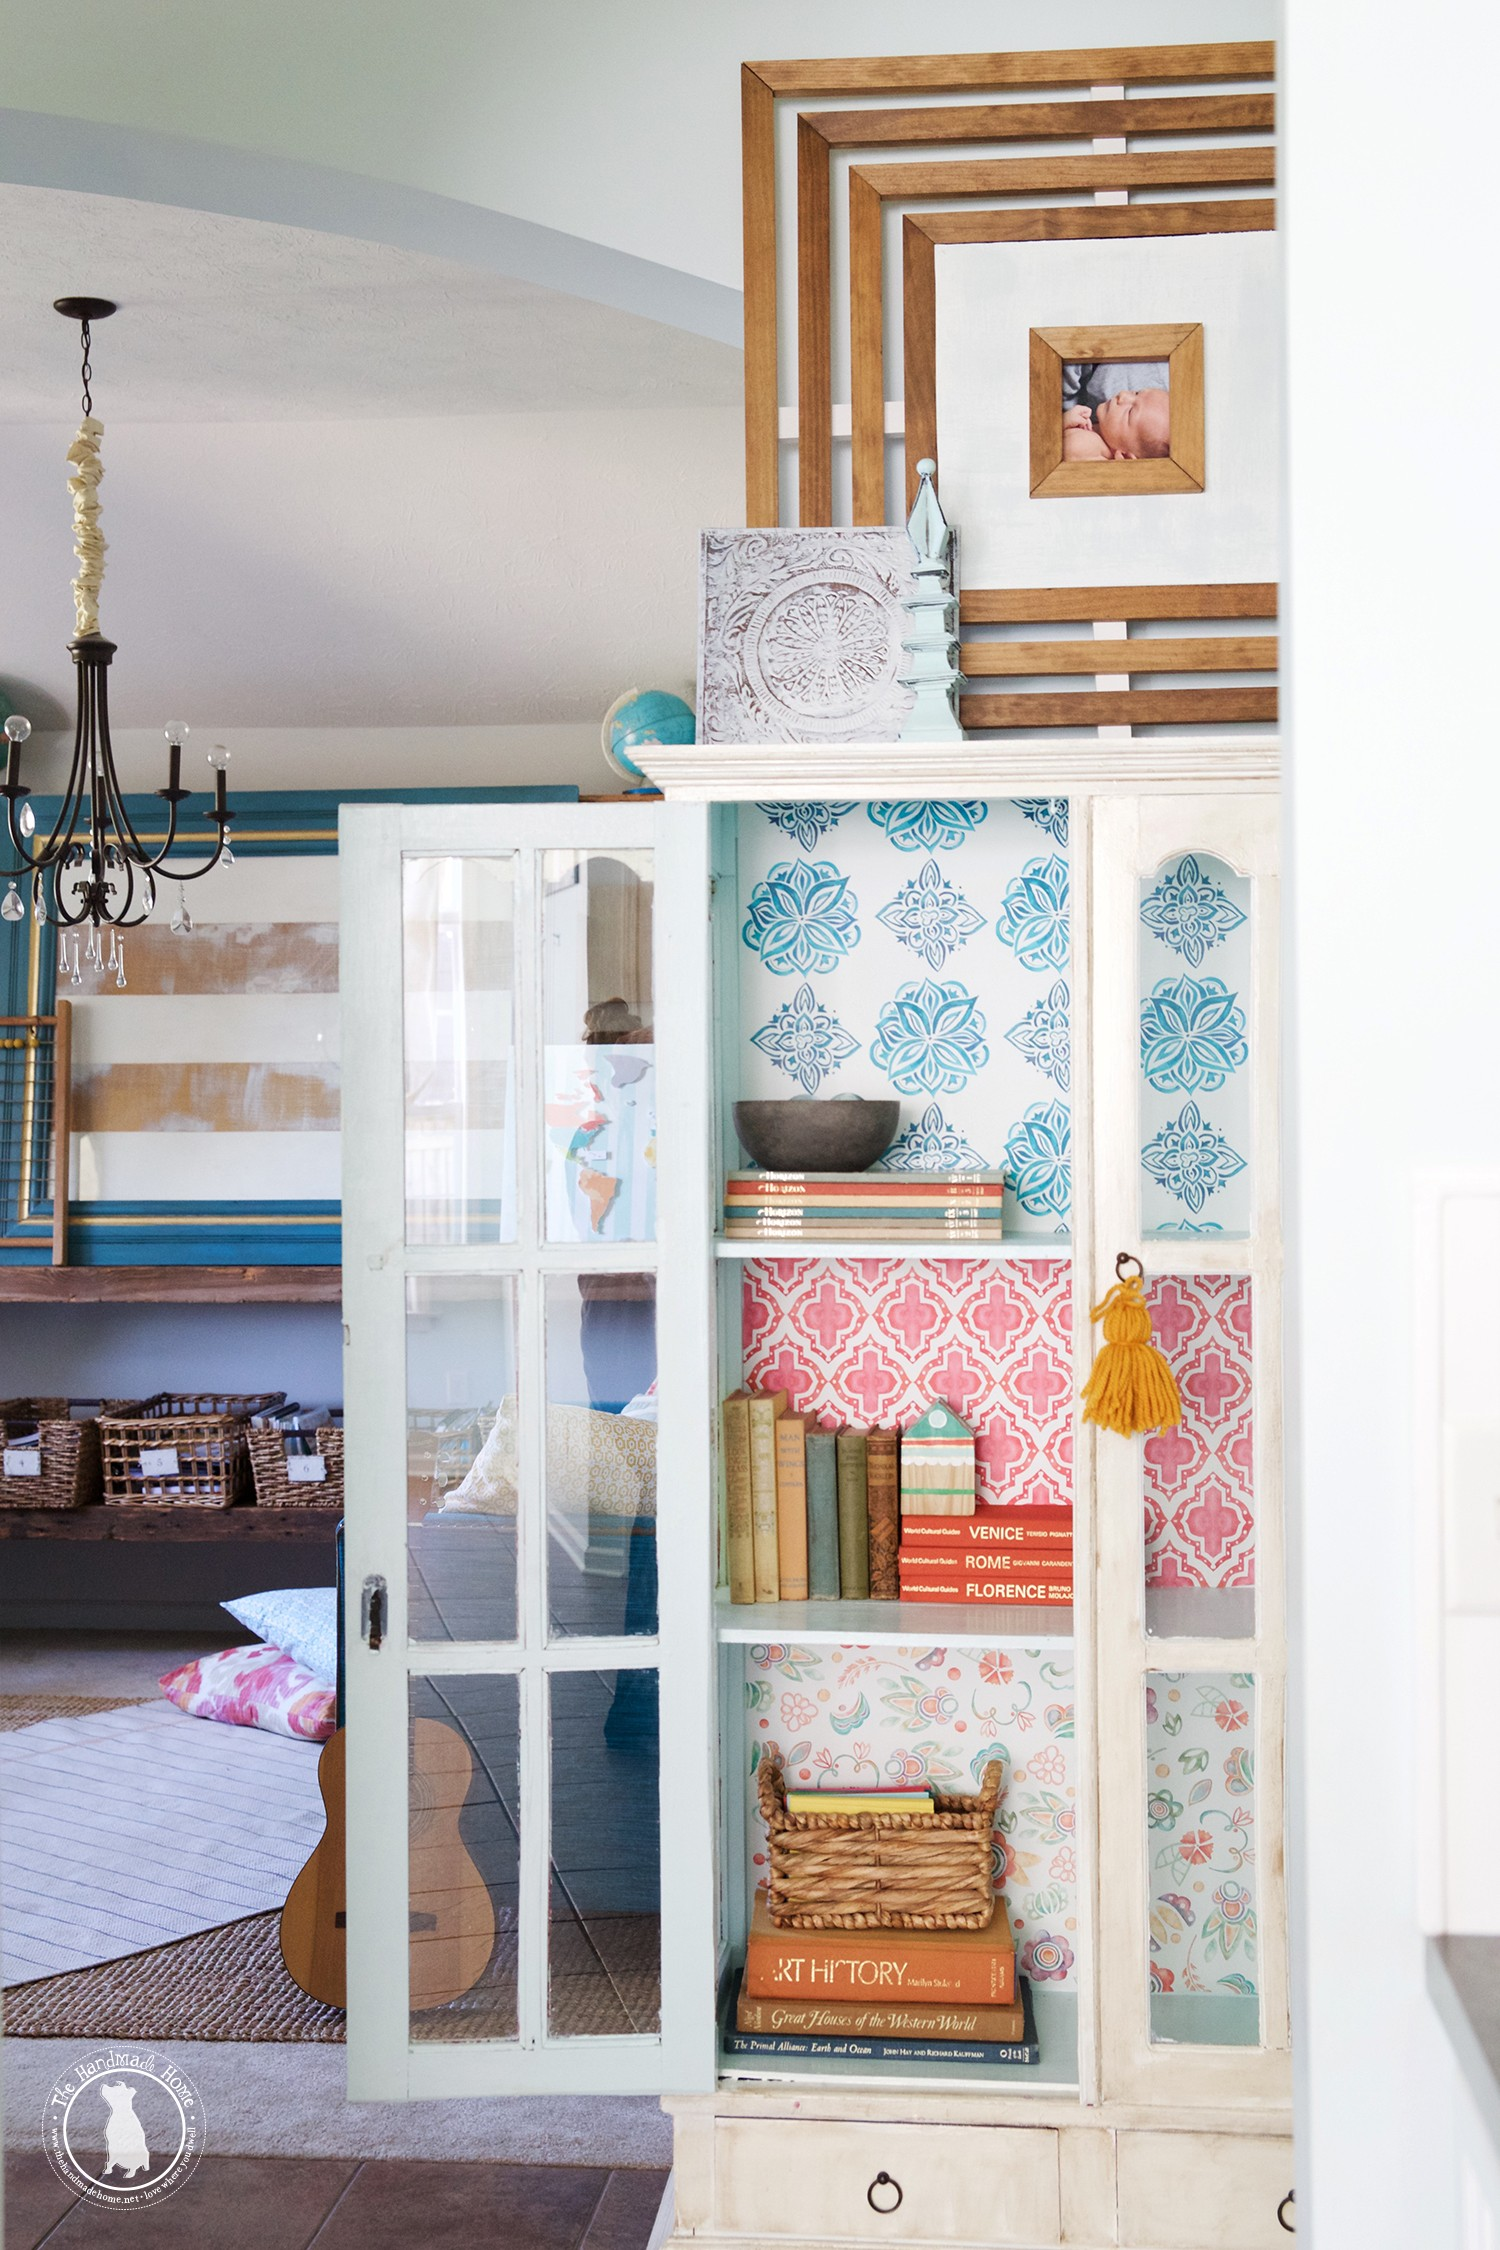 wallpaper_the_handmade_home